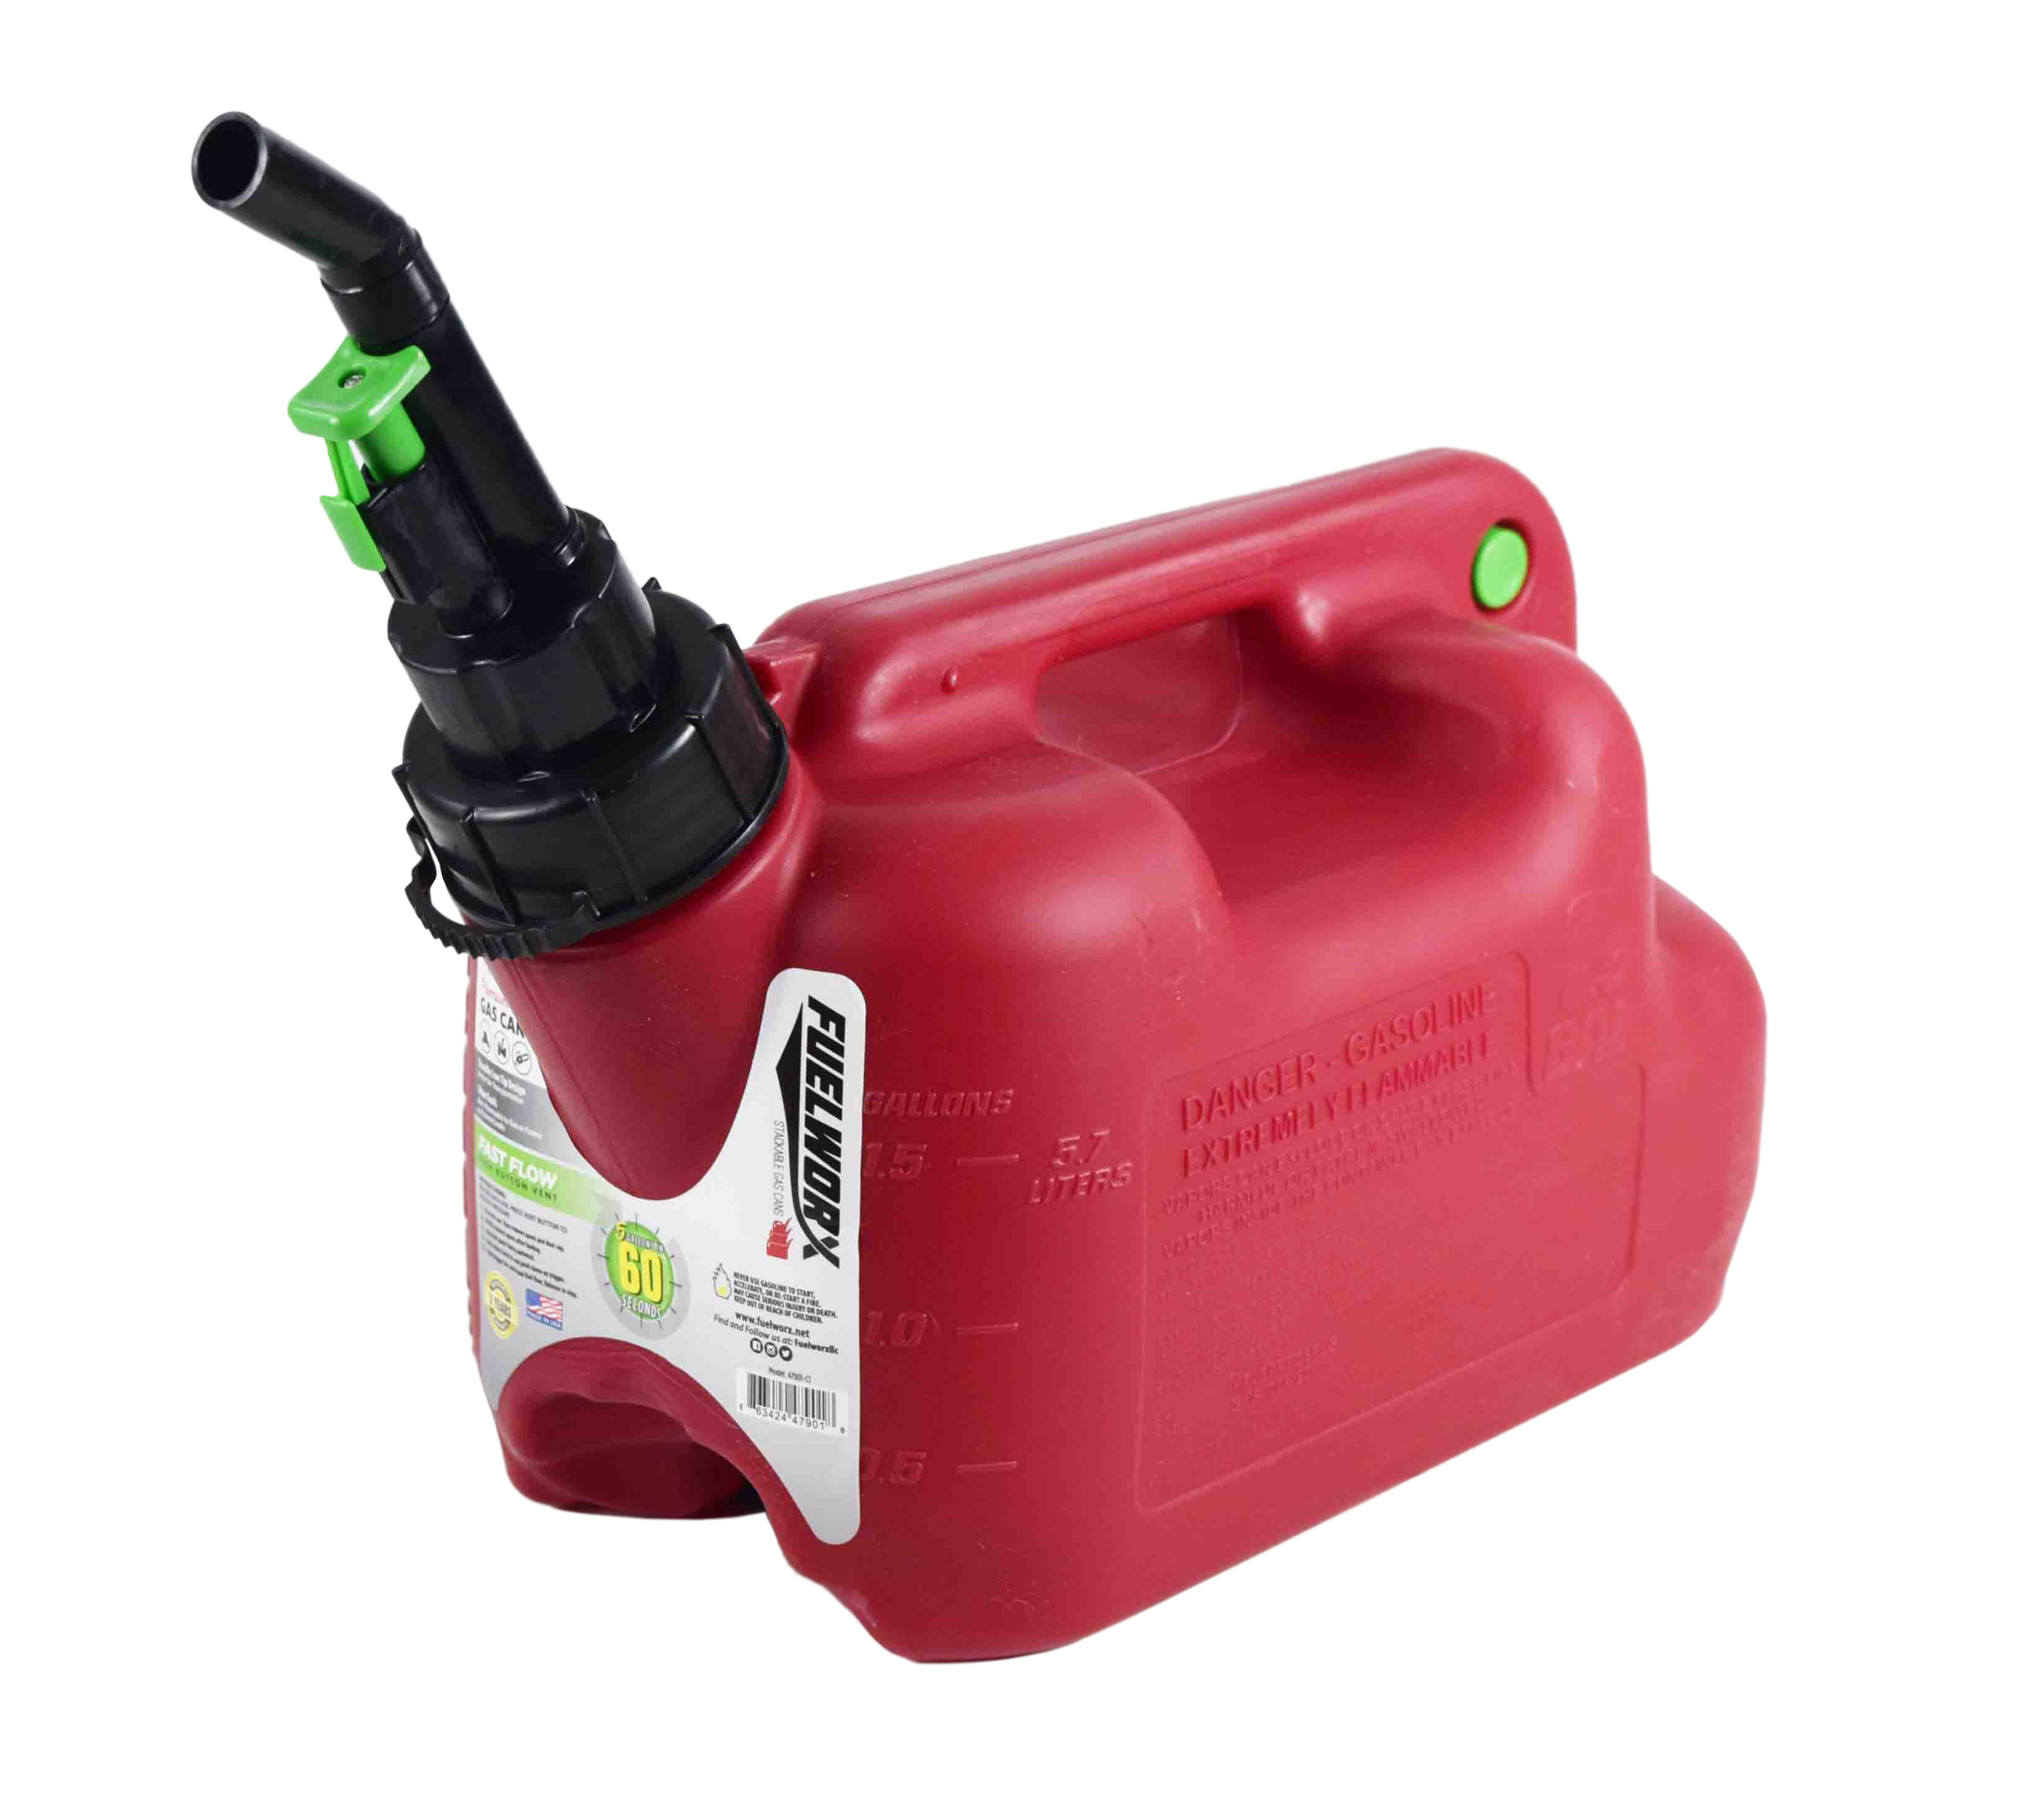 Fuelworx-Red-1.5-Gallon-Stackable-Fast-Pour-Gas-Fuel-Cans-CARB-Compliant-Made-in-The-USA-1.5-Gallon-Gas-Can-Single-image-3